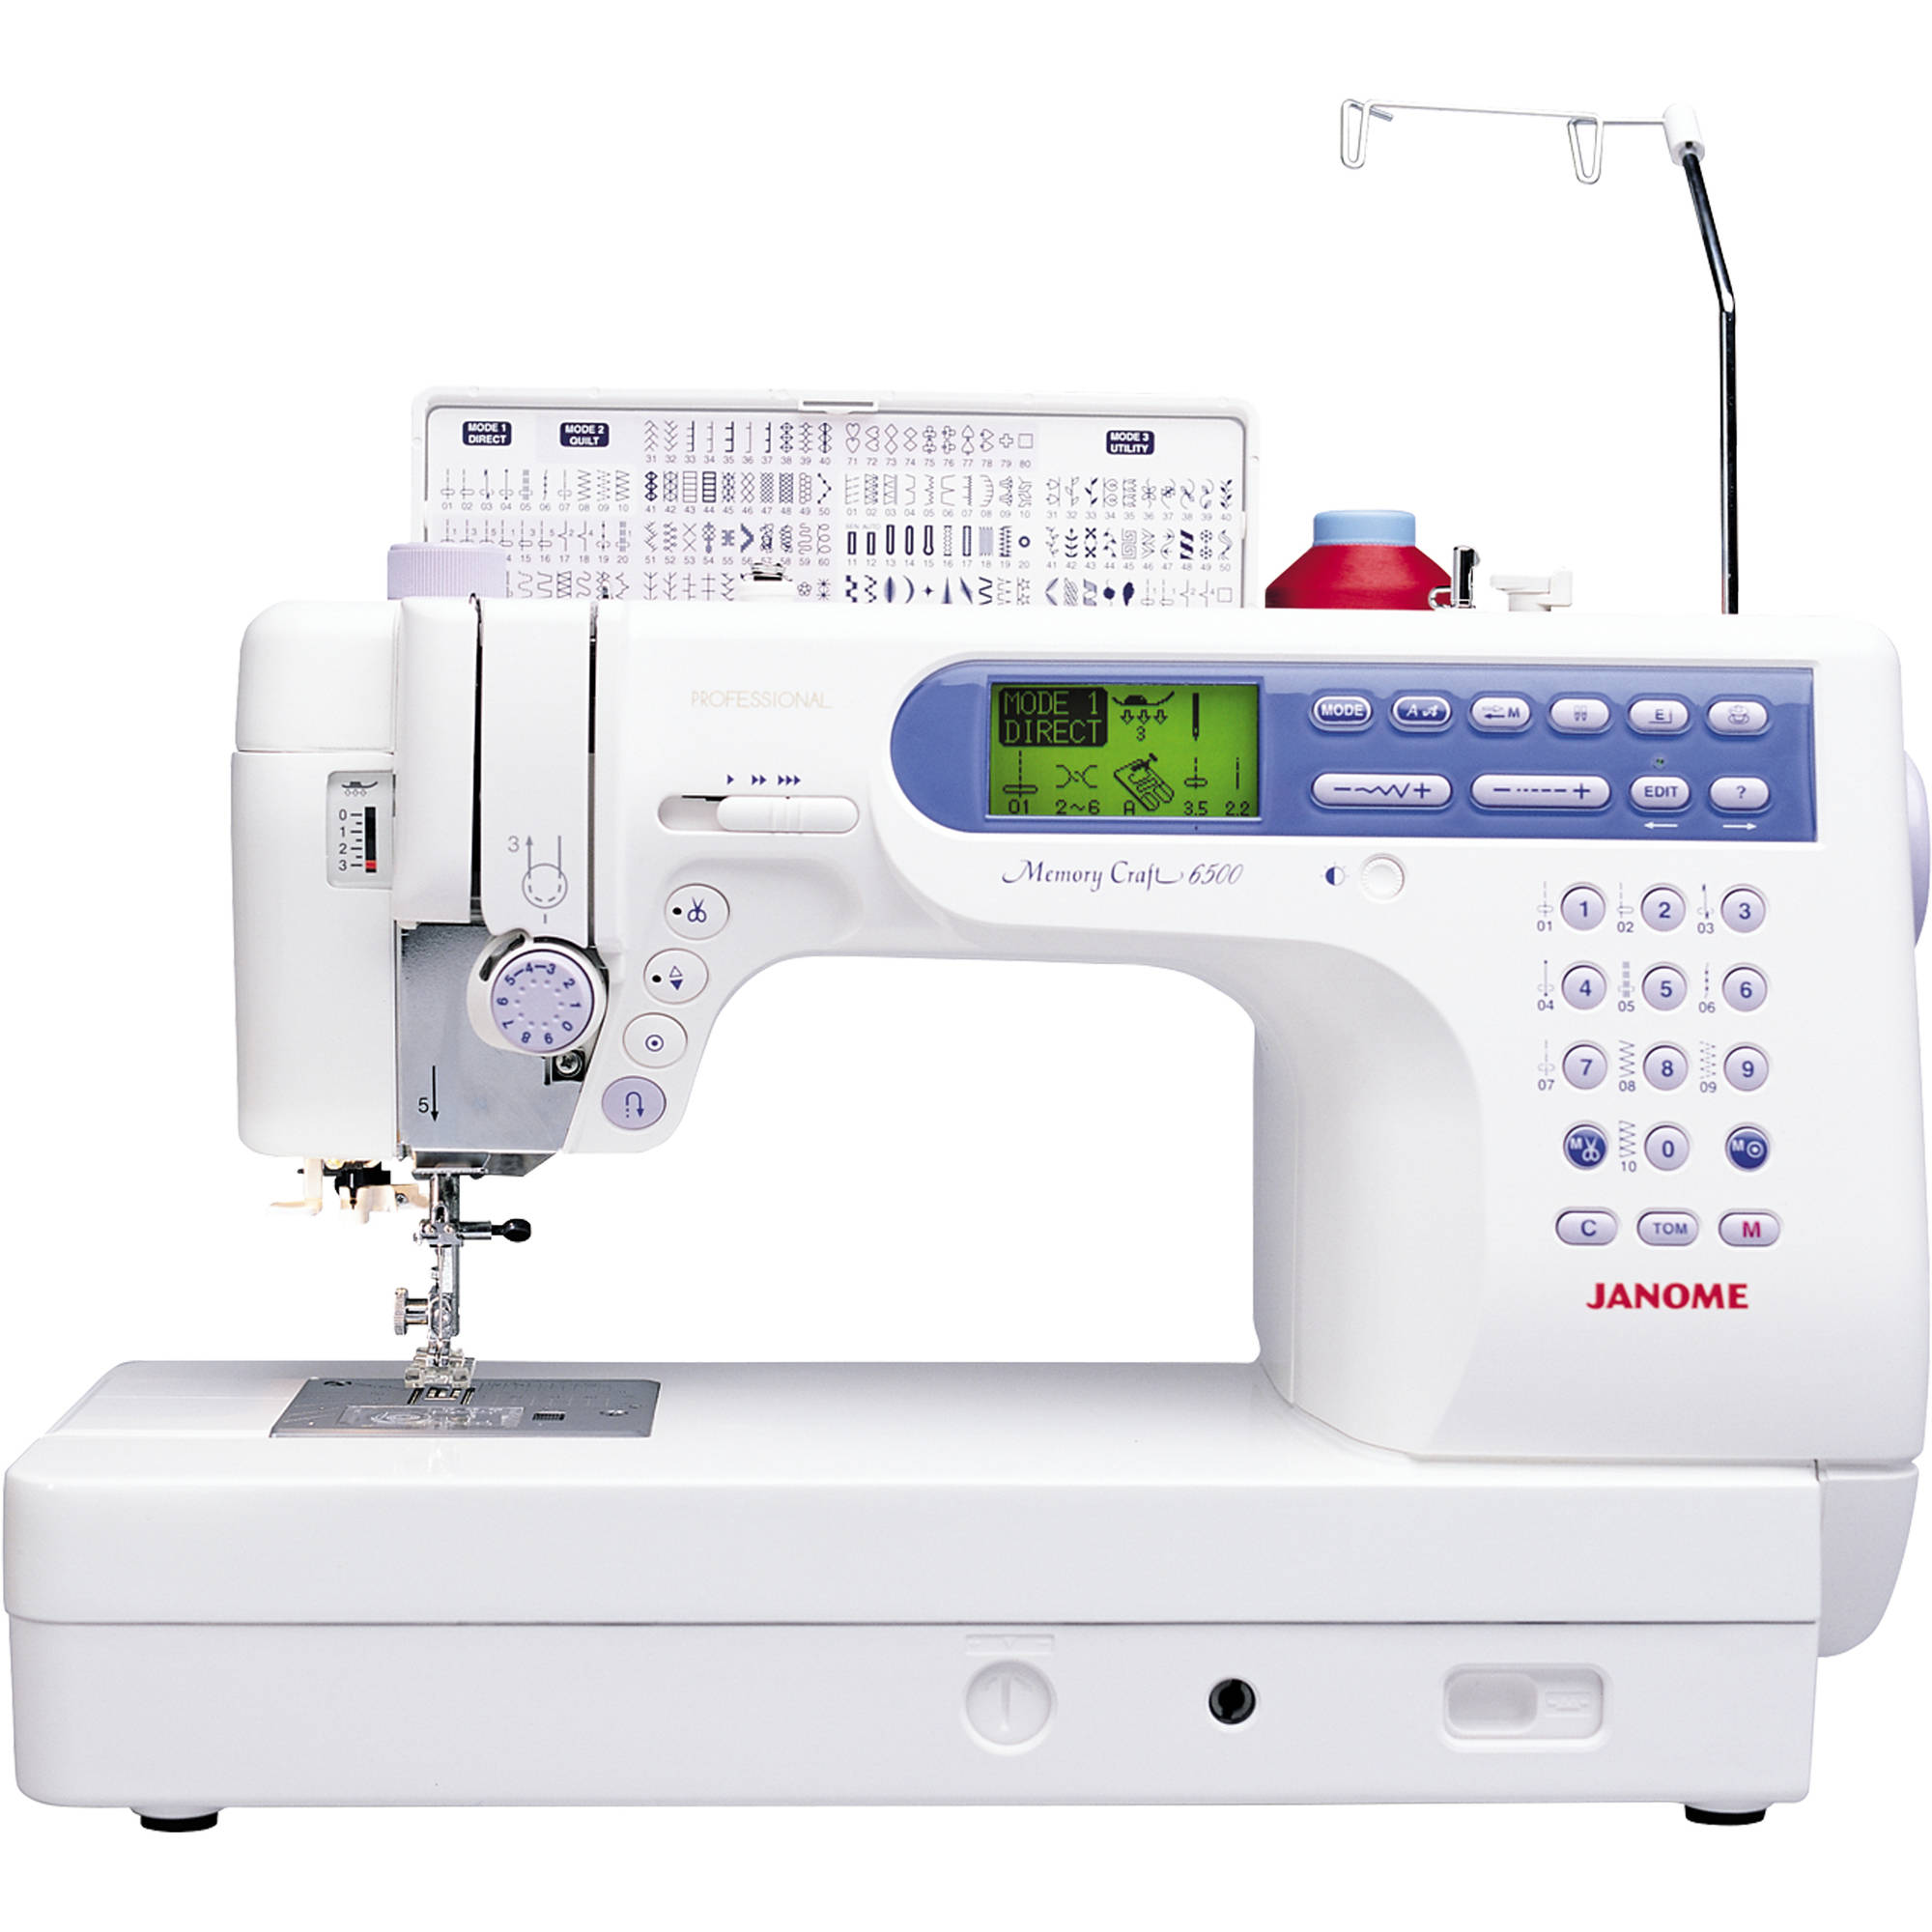 Janome 6500P 135-Stitch High-End Fully-Featured Computerized Quilting and Sewing Machine